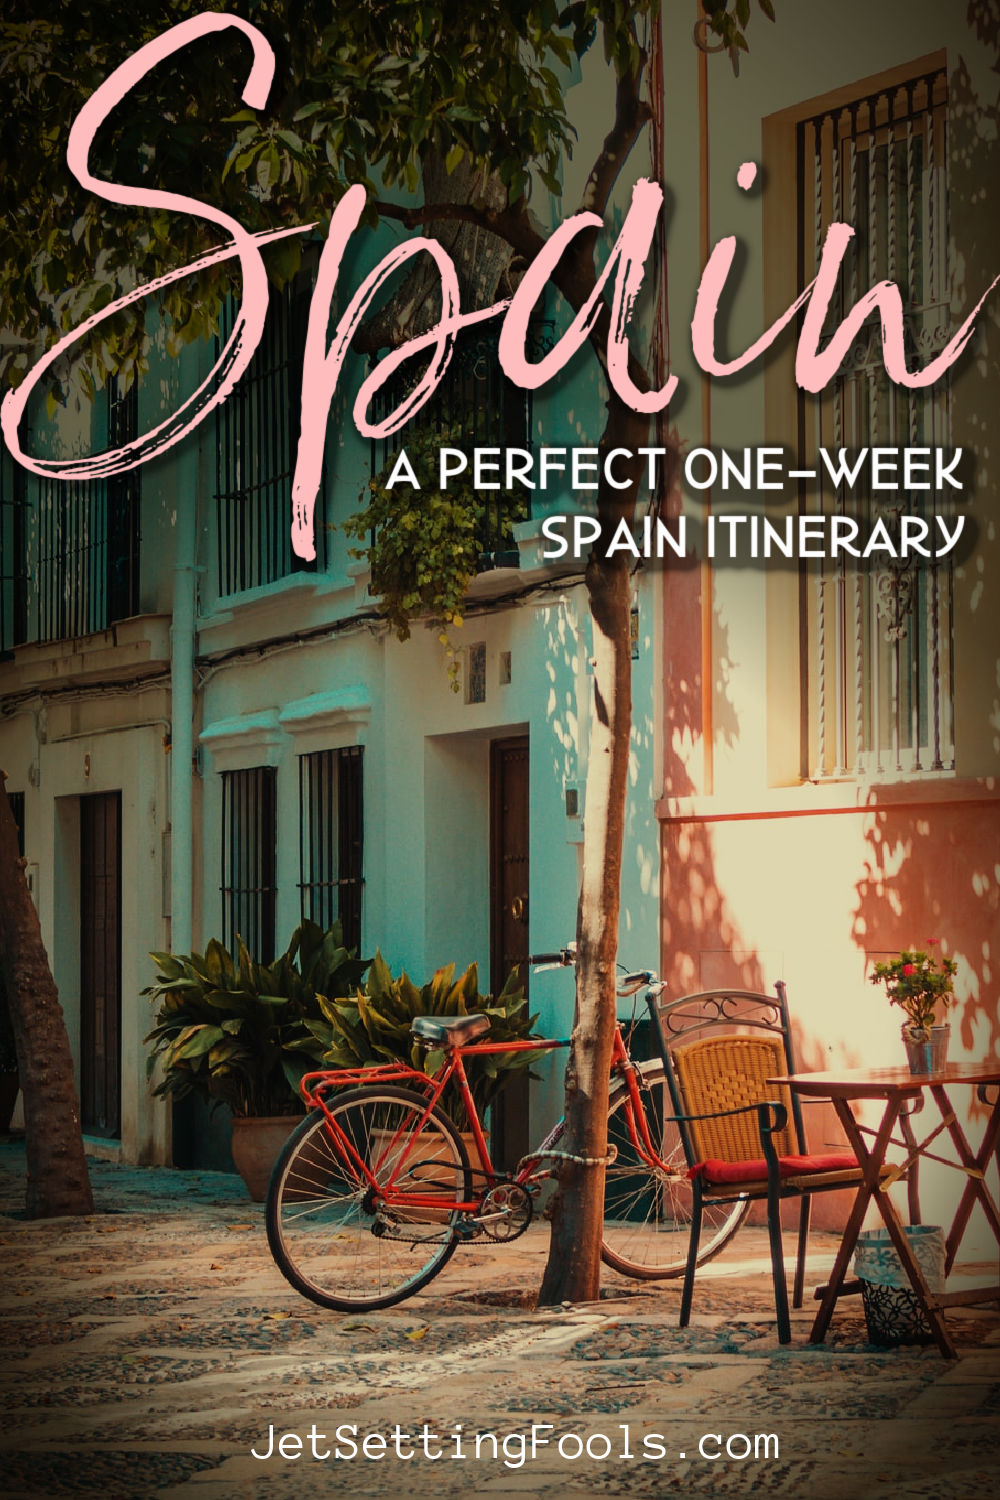 A Perfect One Week Spain Itinerary by JetSettingFools.com